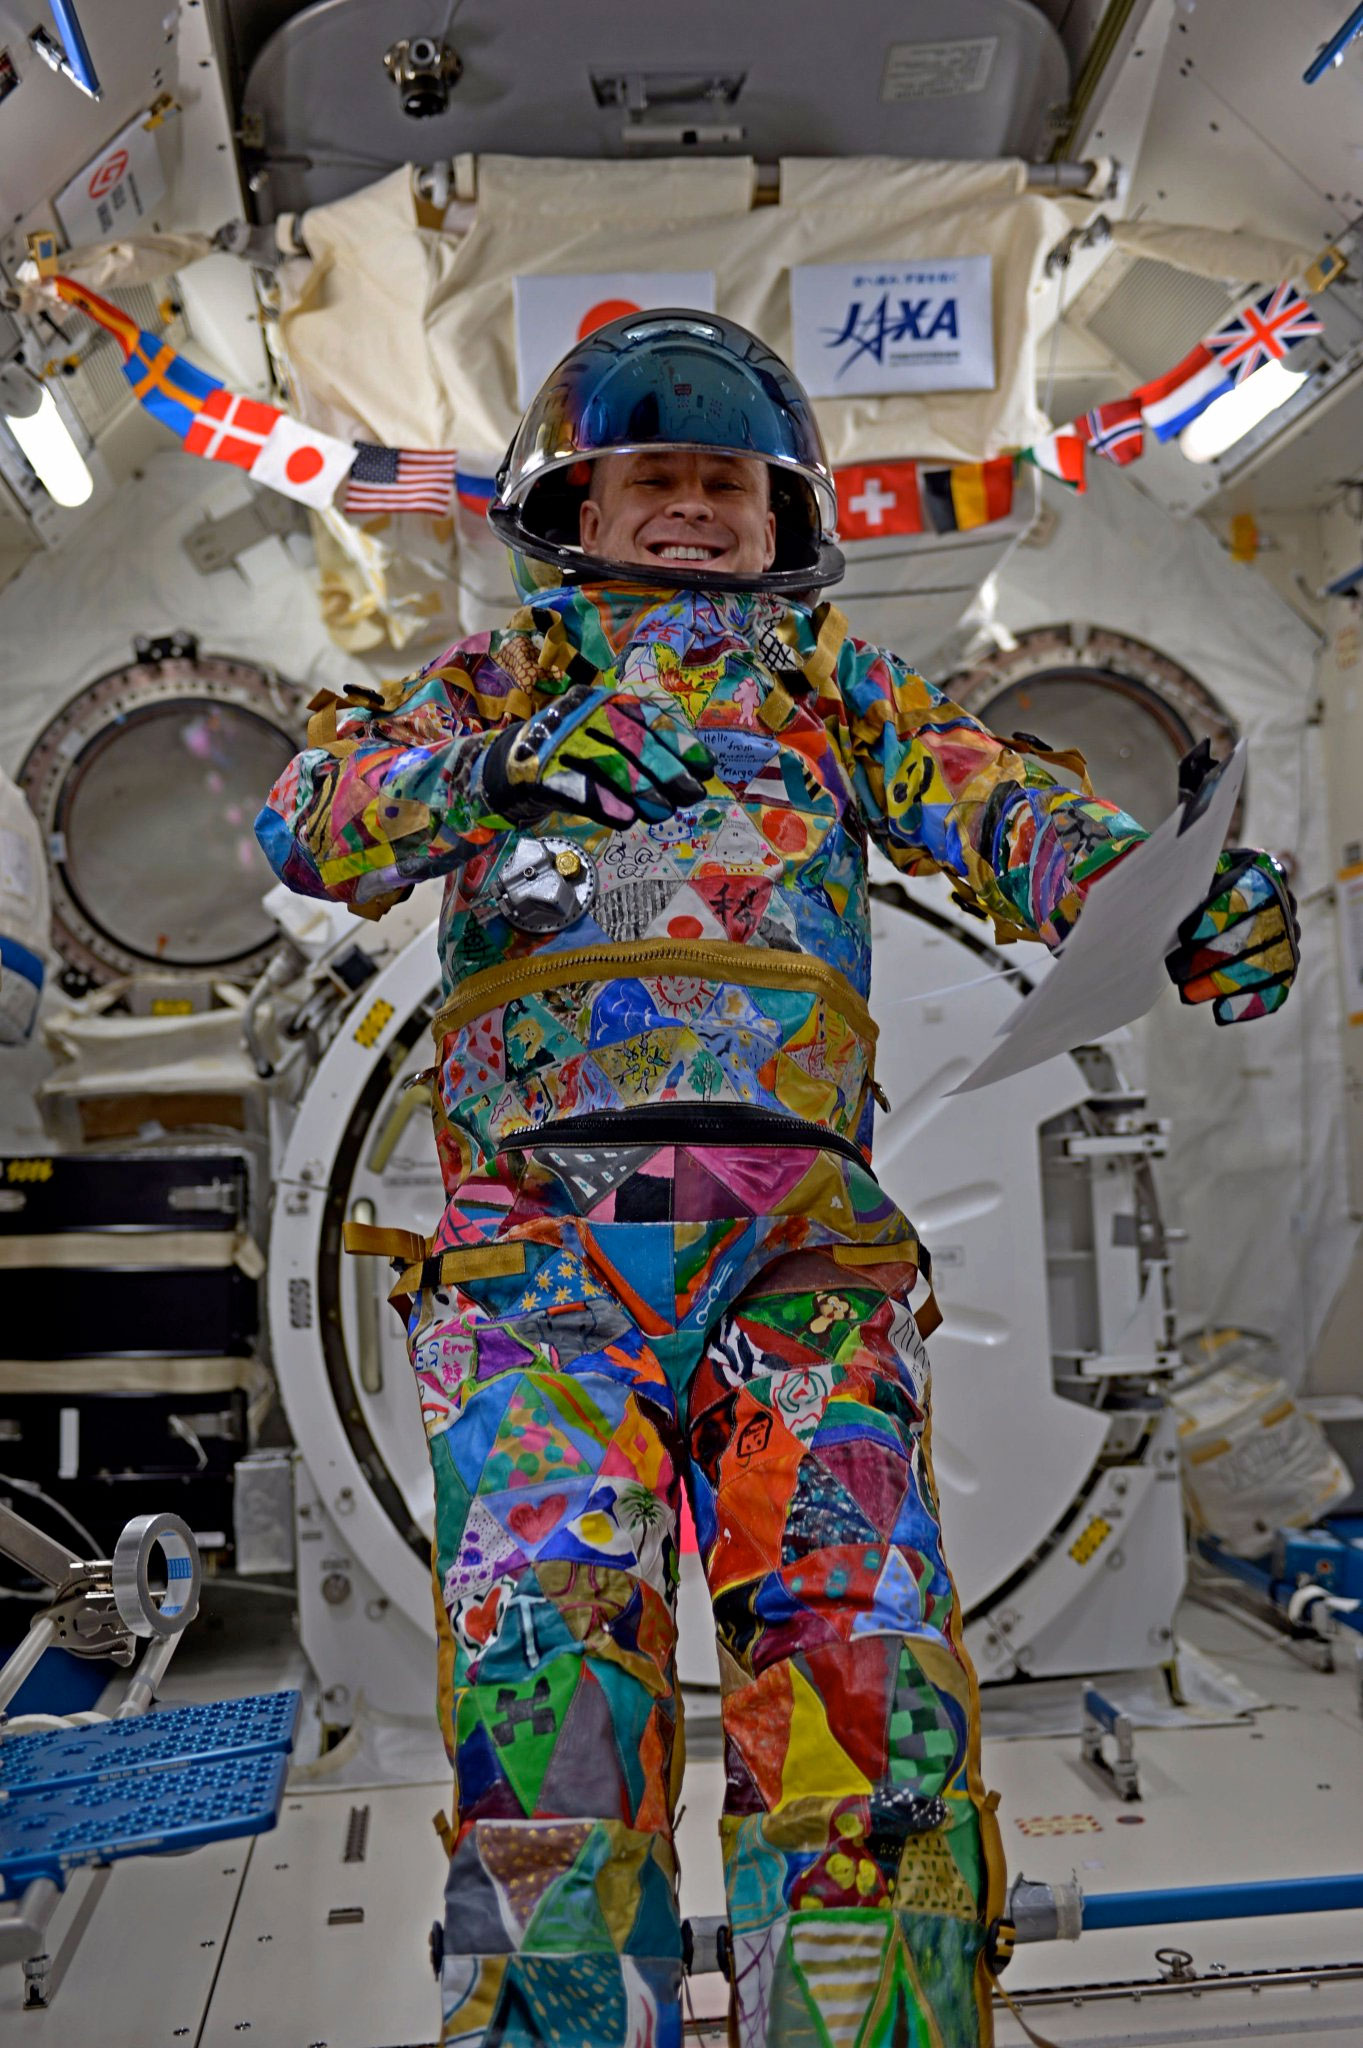 Space And Unity In Art : Spacesuit art project courage unity in space